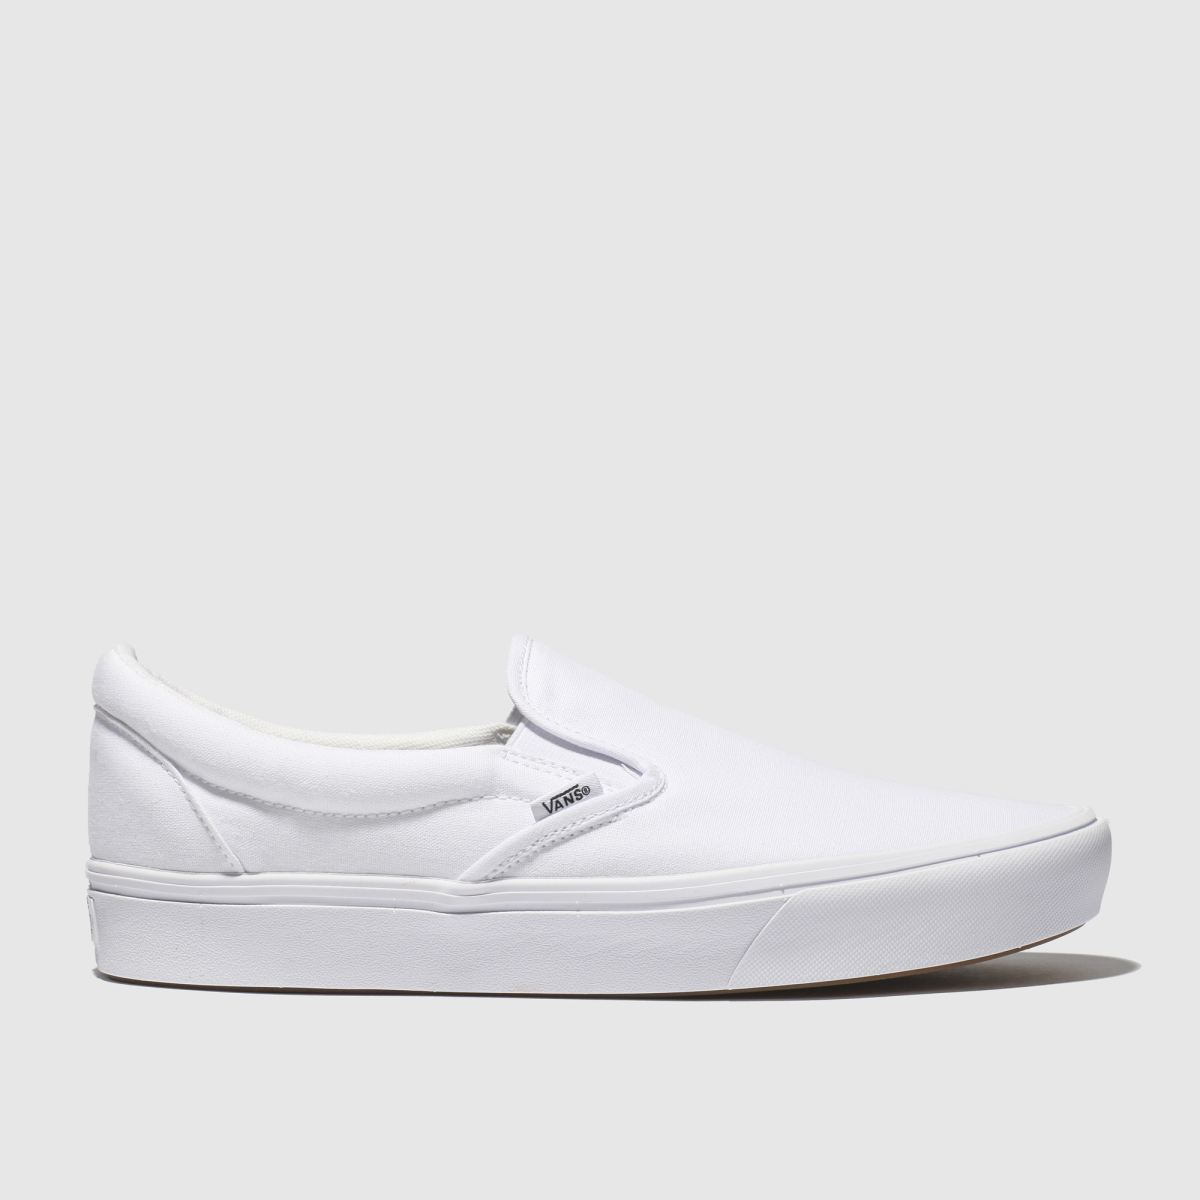 Vans White Comfycush Slip-on Trainers